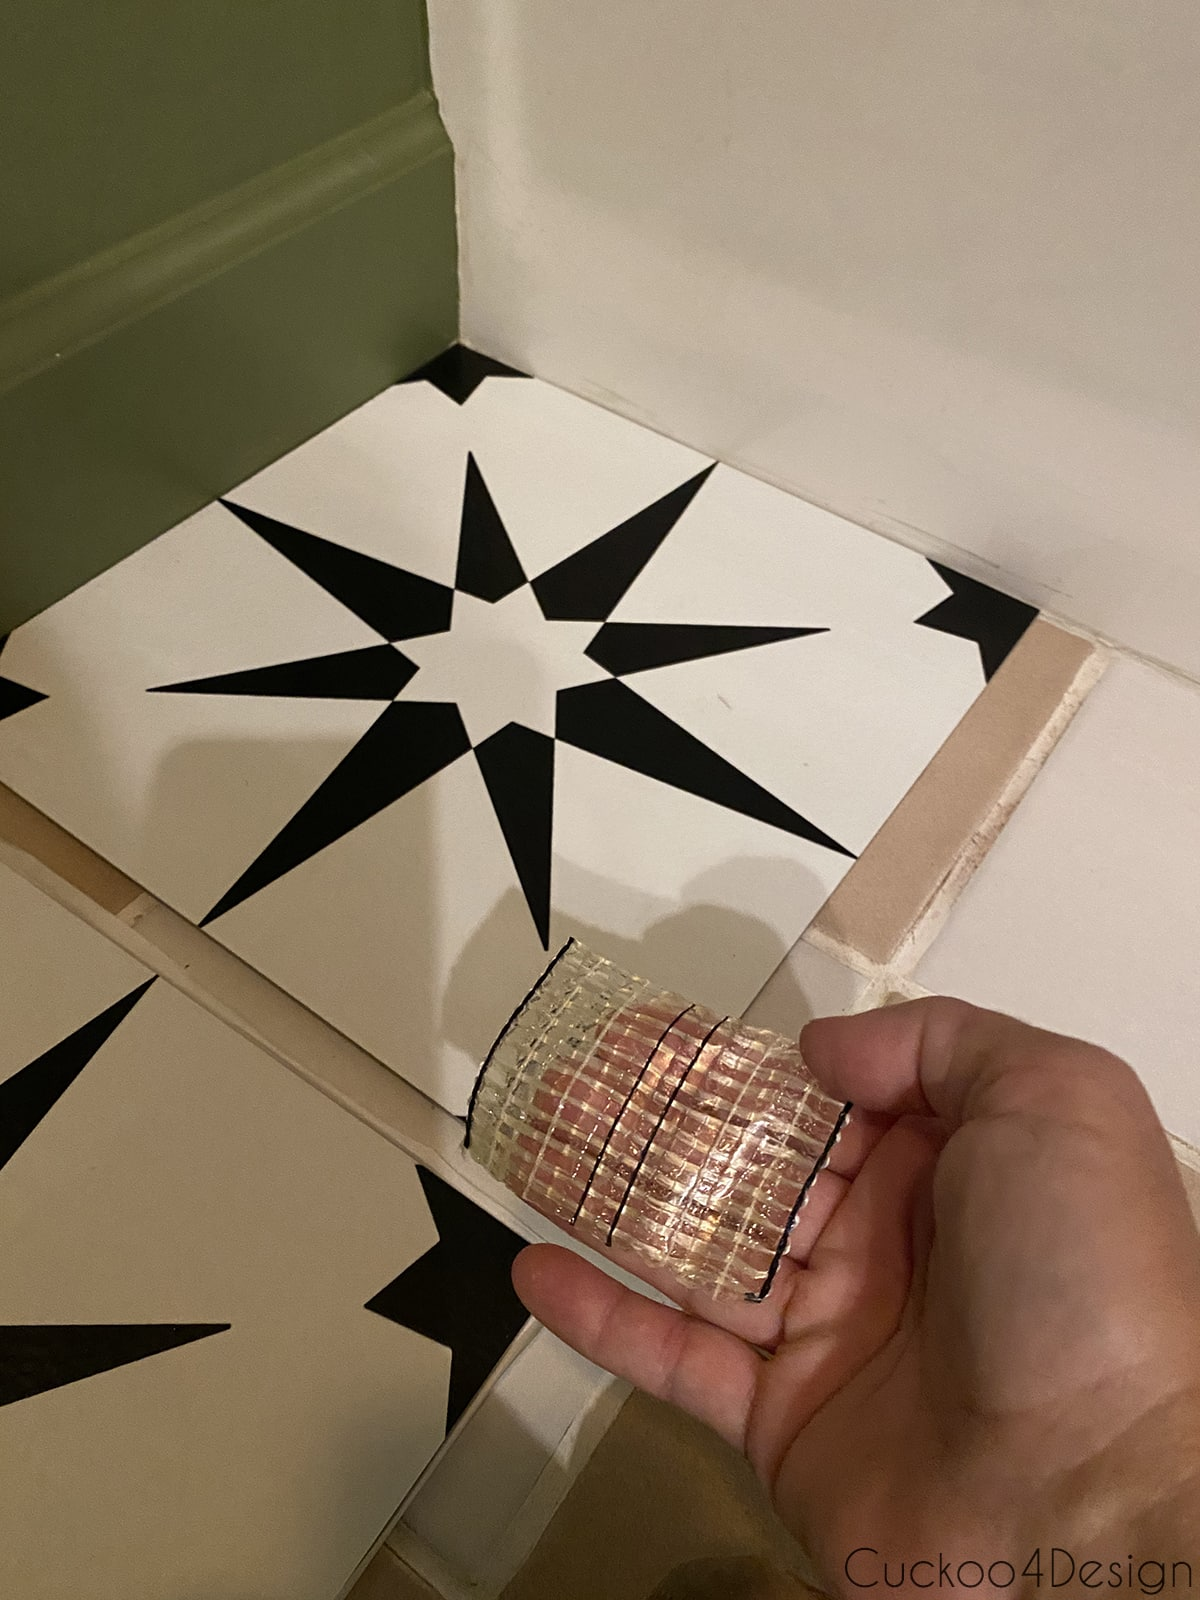 small squares of carpet tape to apply to cheap peel and stick floor tile corners